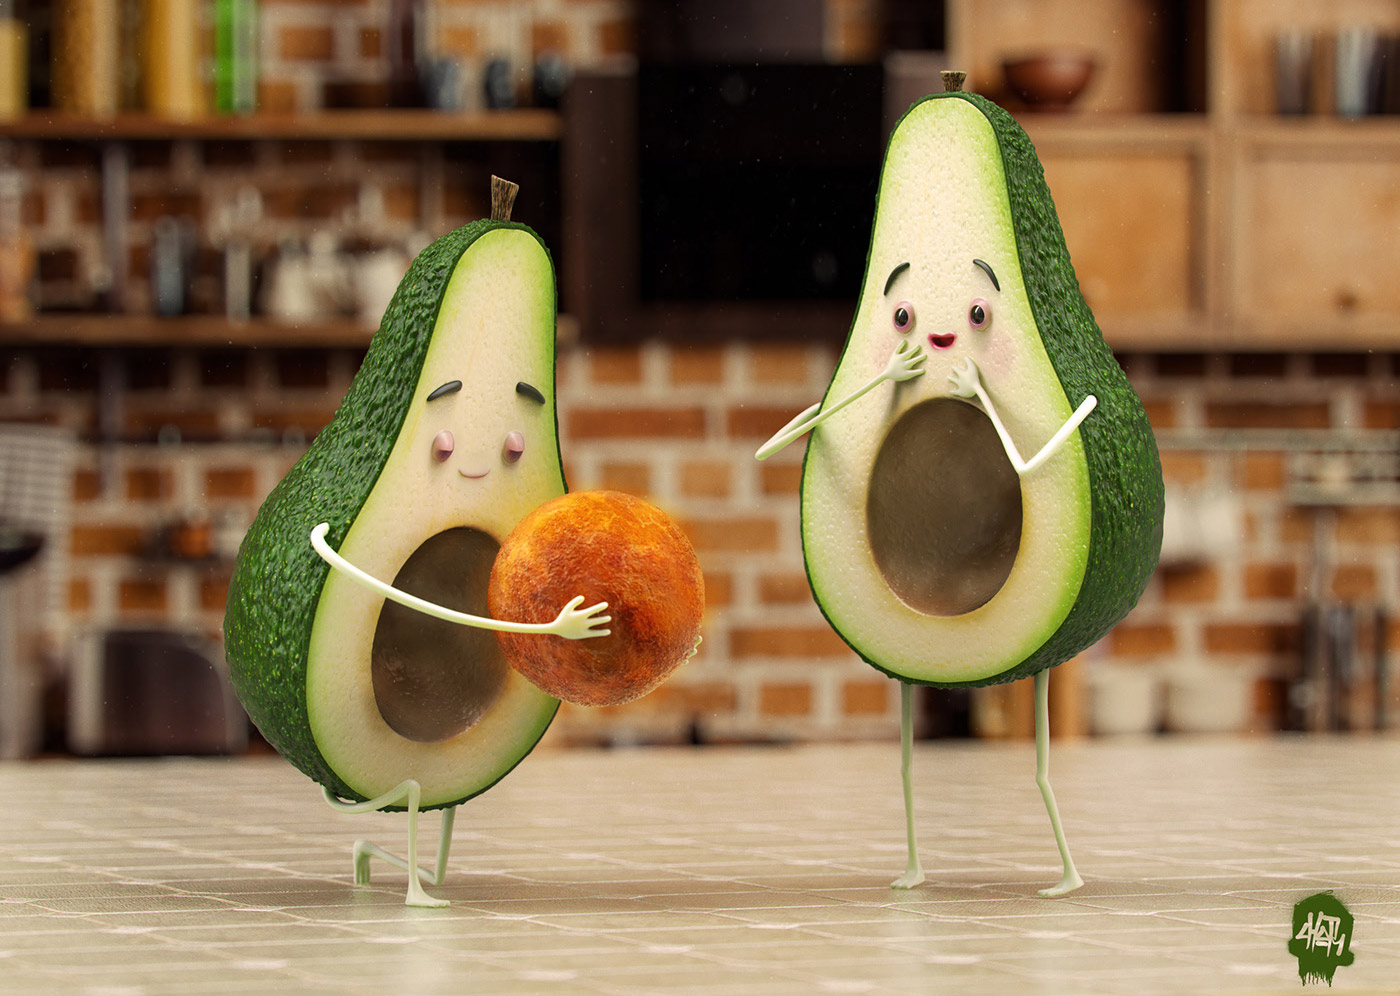 funny advertisement picture avacado by fernando chor